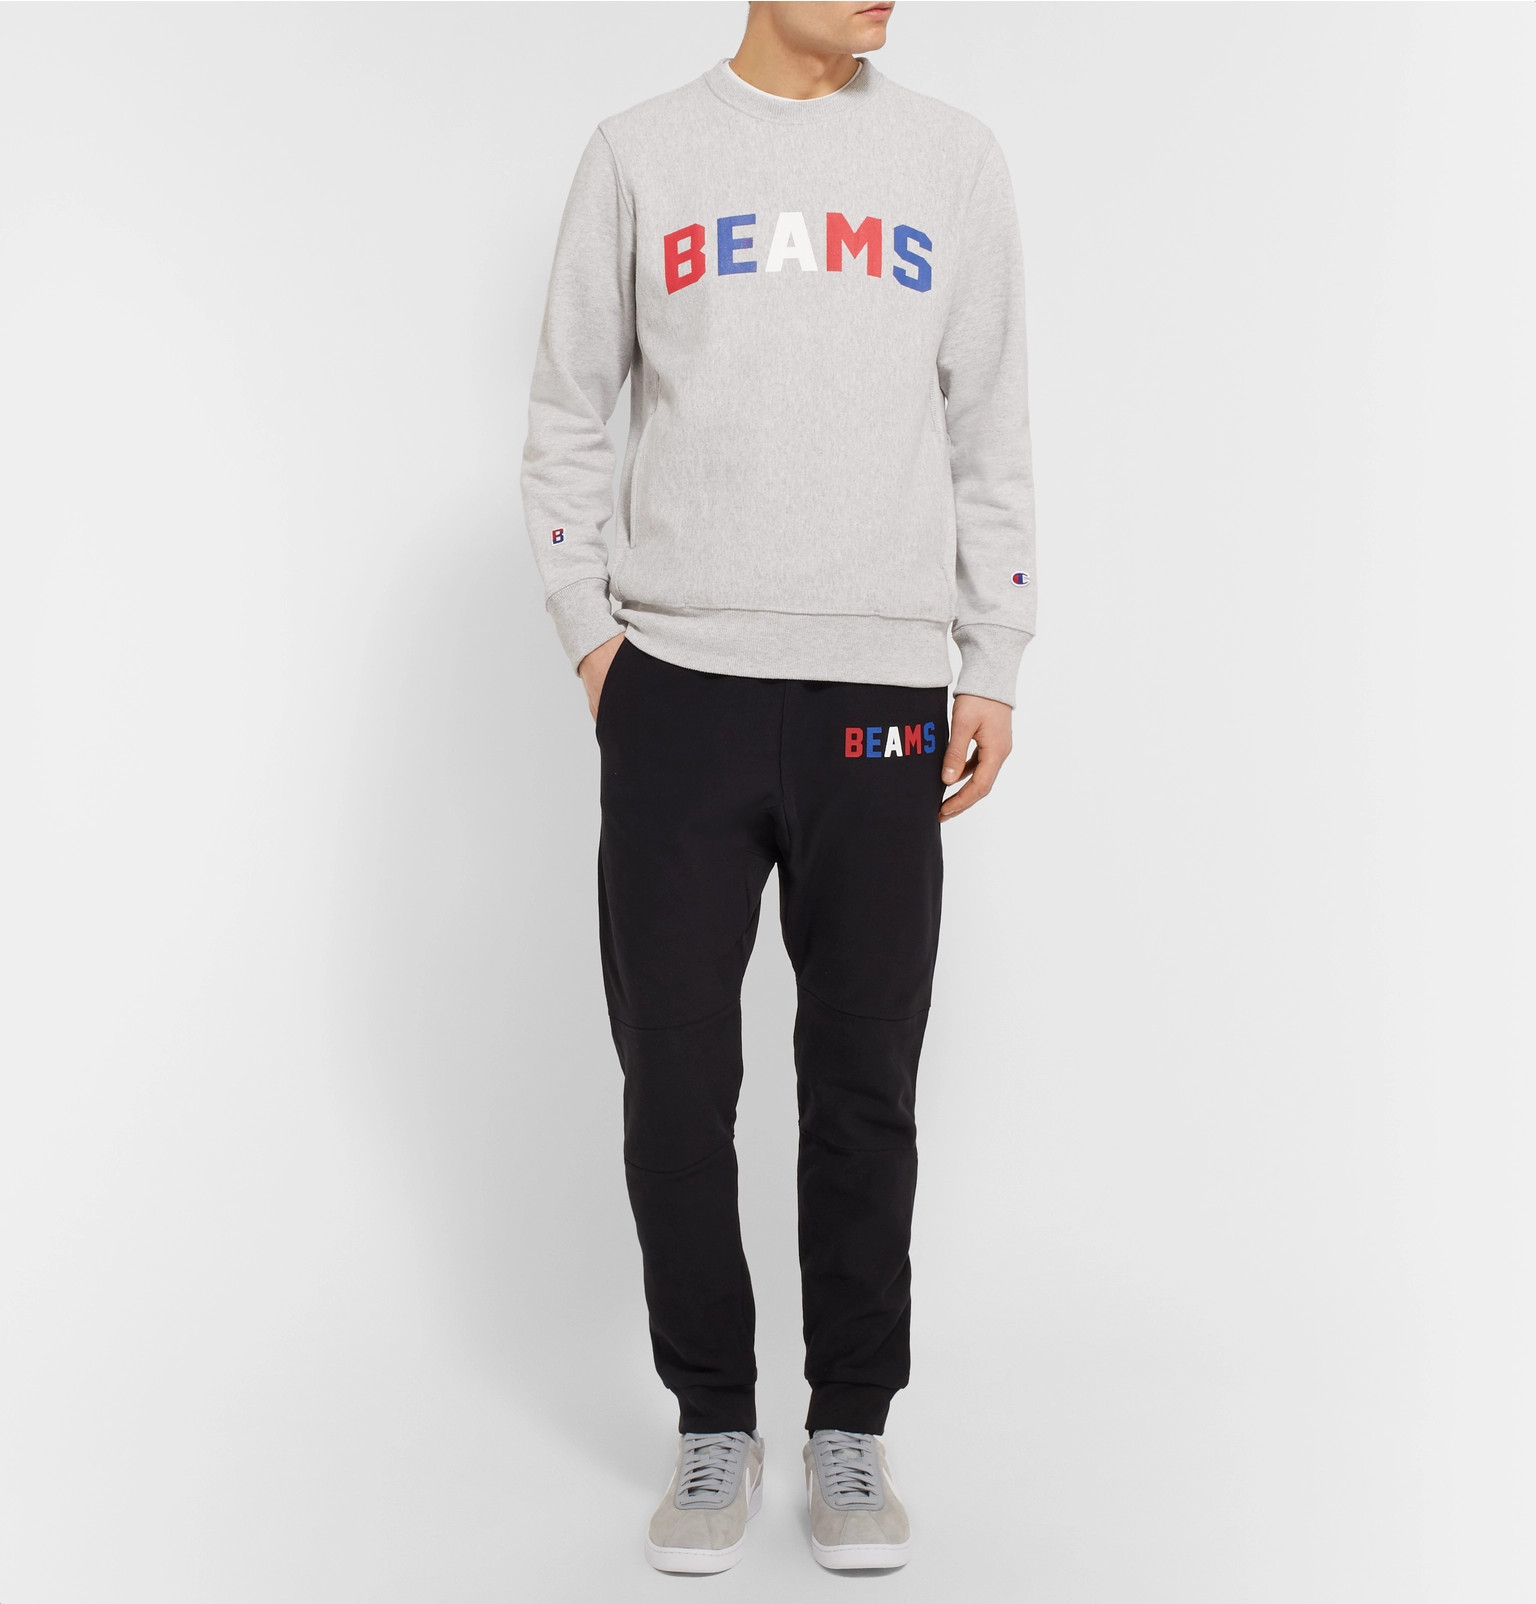 Influential japanese lifestyle and apparel brand beams has - Influential Japanese Lifestyle And Apparel Brand Beams Has 10